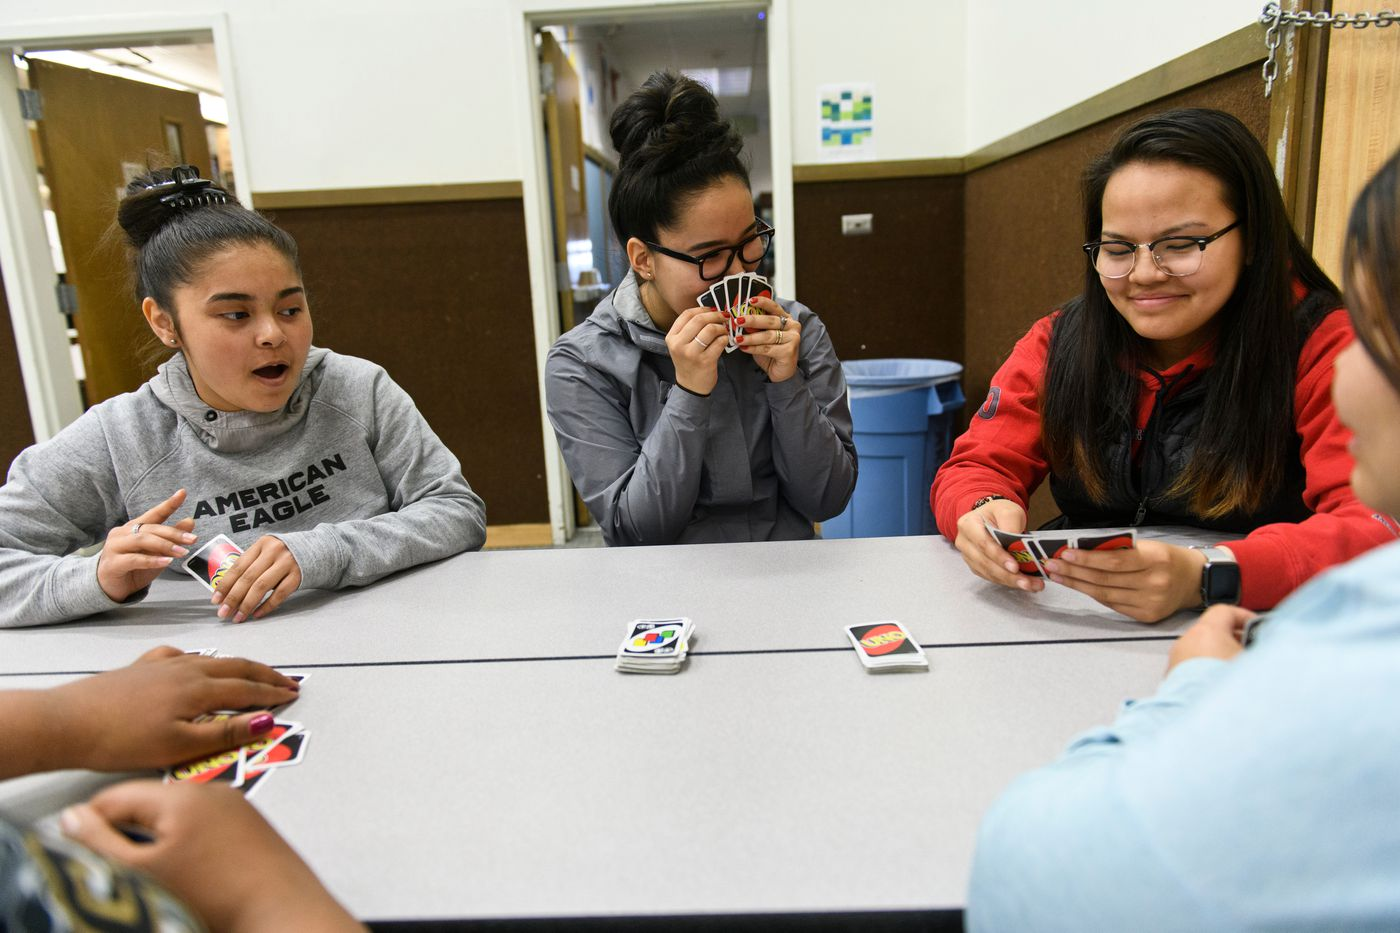 Akhiok senior Denise Kalmakoff plays a card game with other students during the lunch break of a school day on May 14. Seventh-grader Leilani Murillo is at left, and sophomore Teanna Amodo is at right. (Marc Lester / ADN)